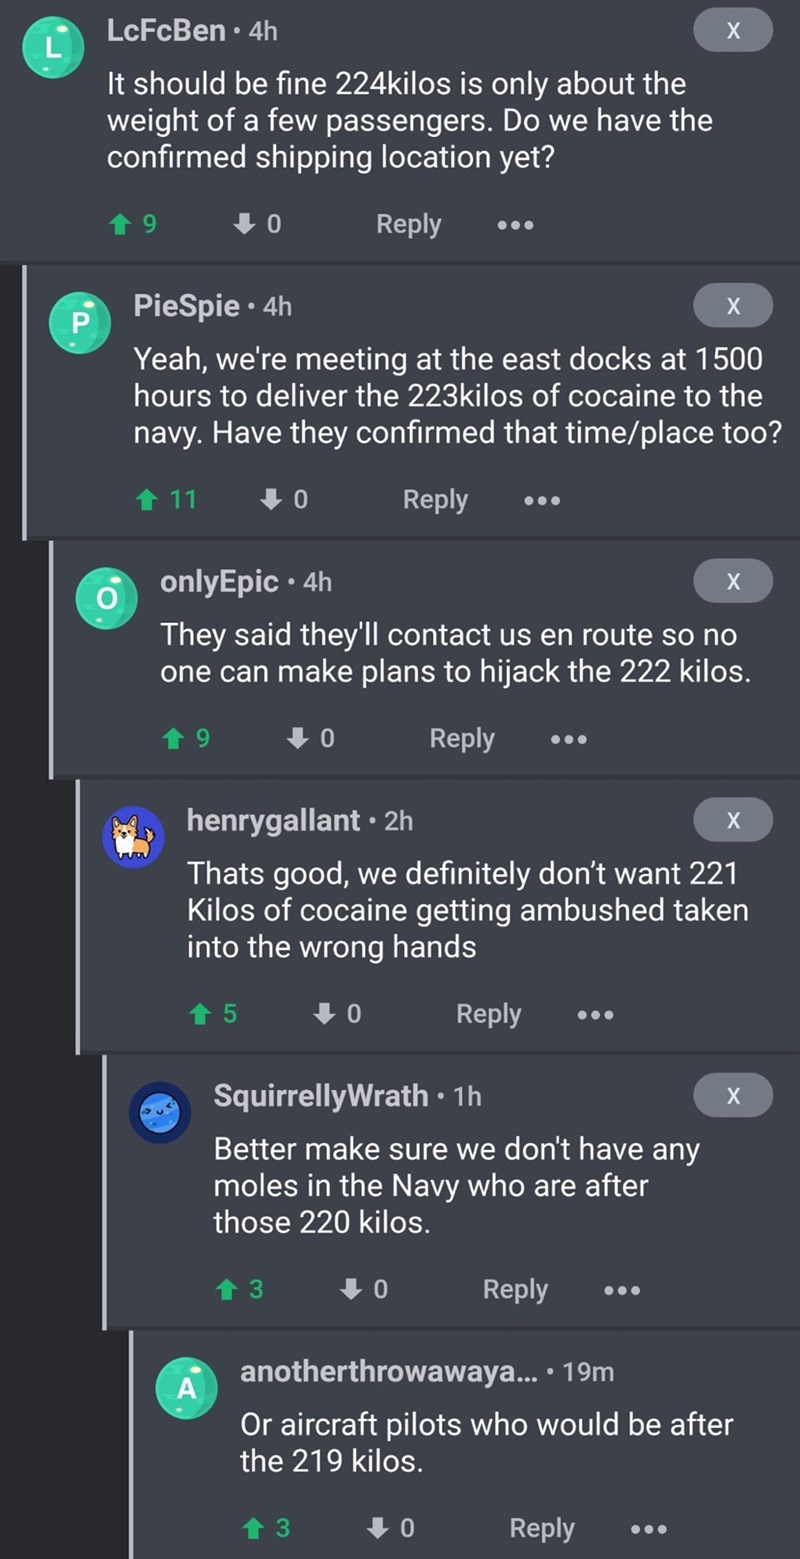 drug bust - Text - LcFcBen 4h X It should be fine 224kilos is only about the weight of a few passengers. Do we have the confirmed shipping location yet? Reply 01 PieSpie 4h X Yeah, we're meeting at the east docks at 1500 hours to deliver the 223kilos of cocaine to the navy. Have they confirmed that time/place too? Reply 11 01 onlyEpic 4h They said they'll contact us en route so no one can make plans to hijack the 222 kilos. Reply t 9 0 henrygallant 2h Thats good, we definitely don't want 221 Kil